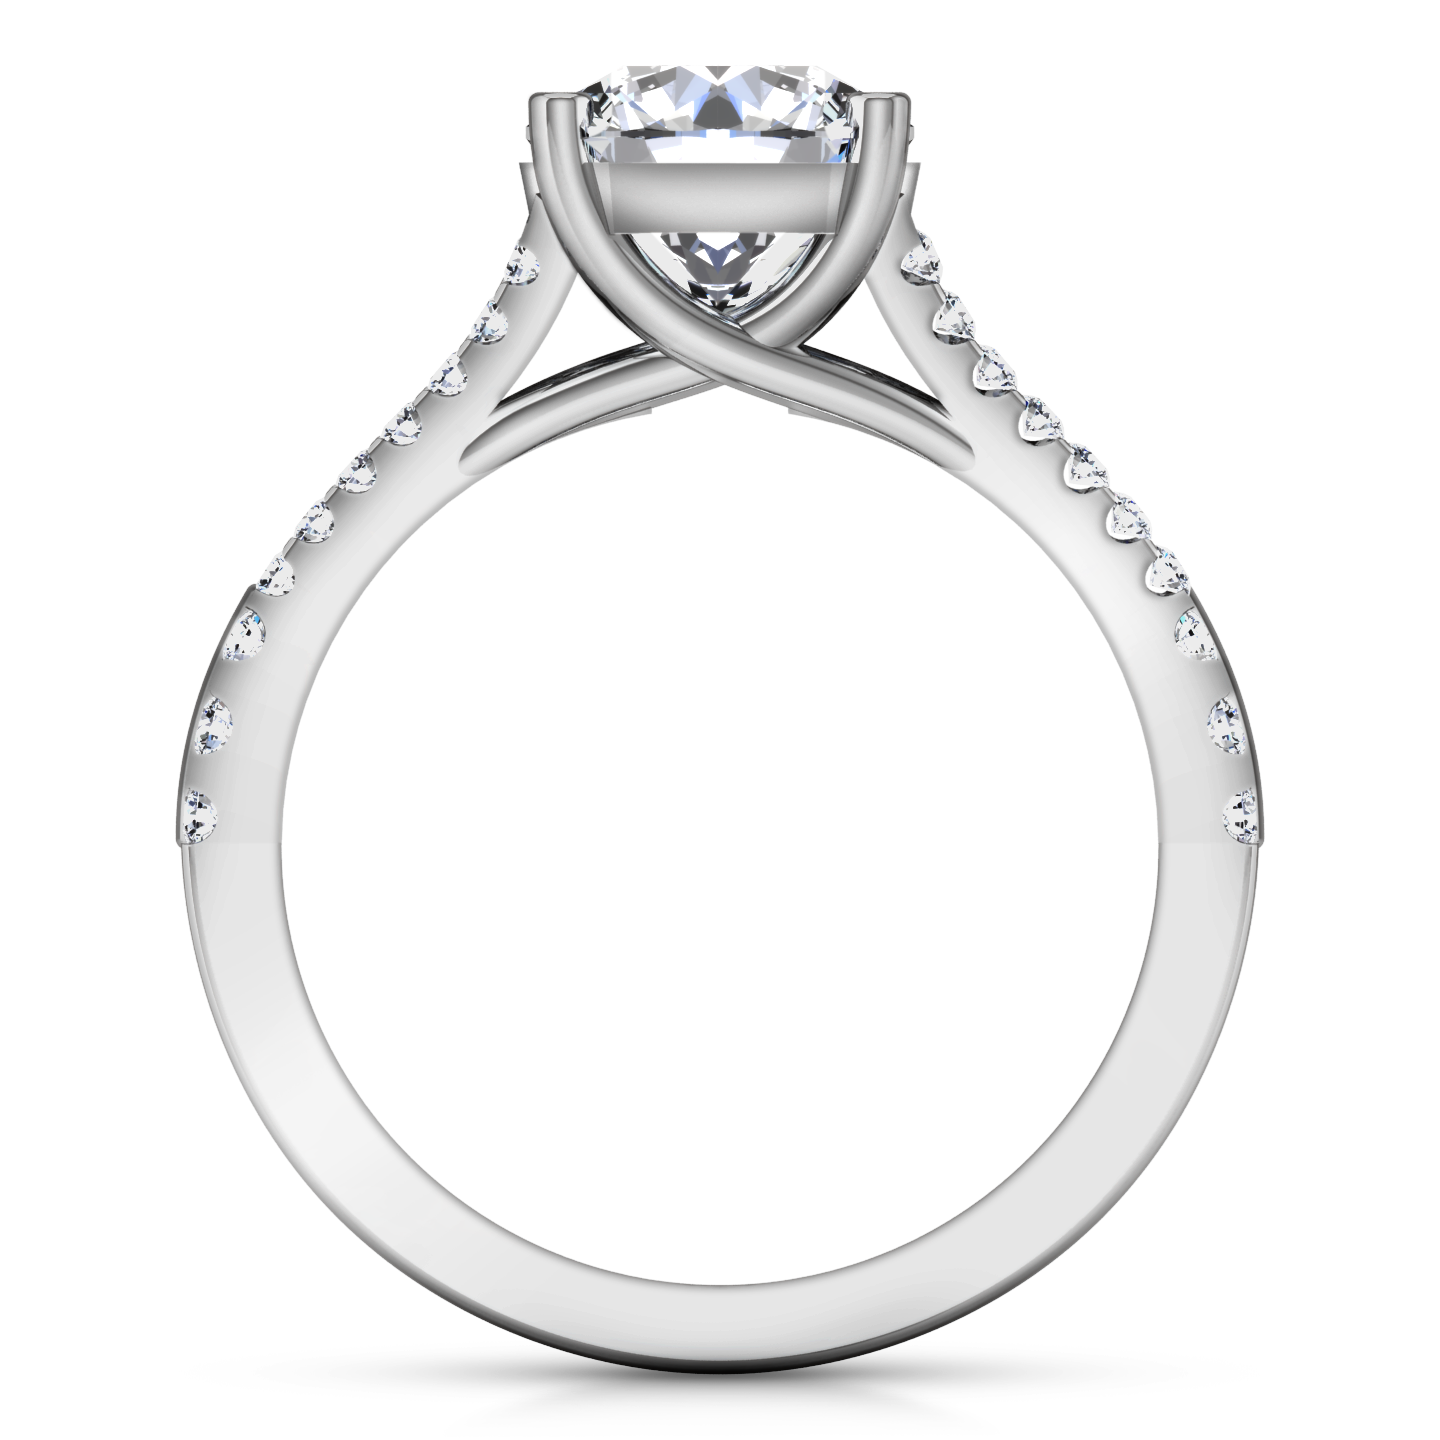 Drawing gold diamond. Pave cushion cut engagement